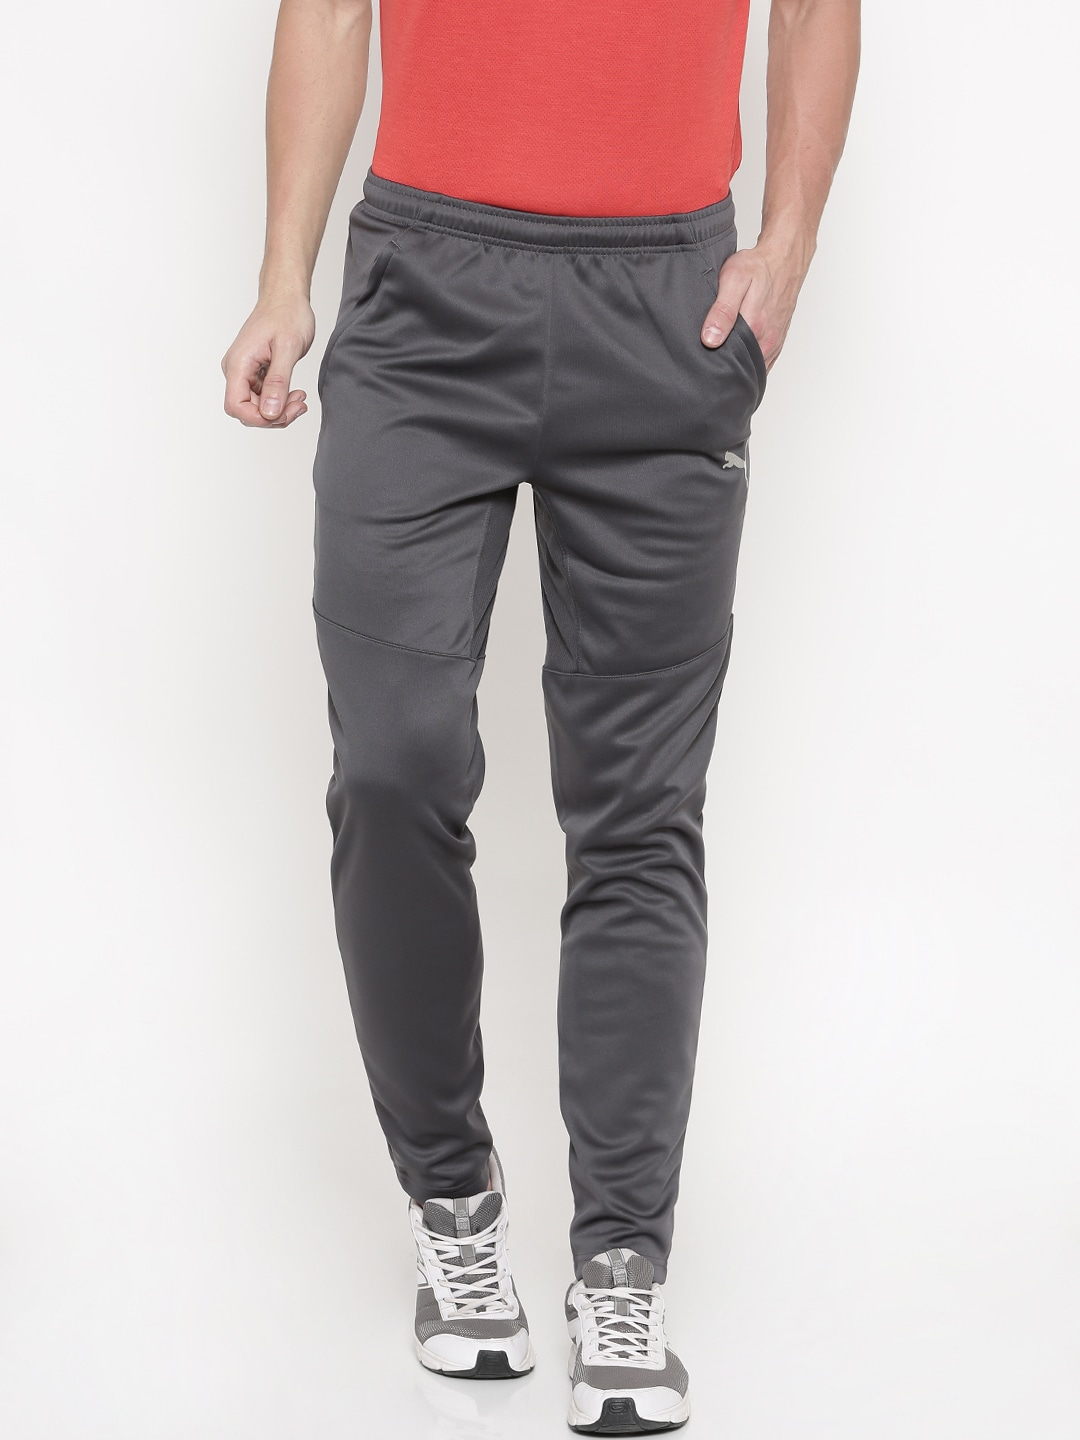 763f1f7712e3 Puma Ferrari Track Pants - Buy Puma Ferrari Track Pants online in India